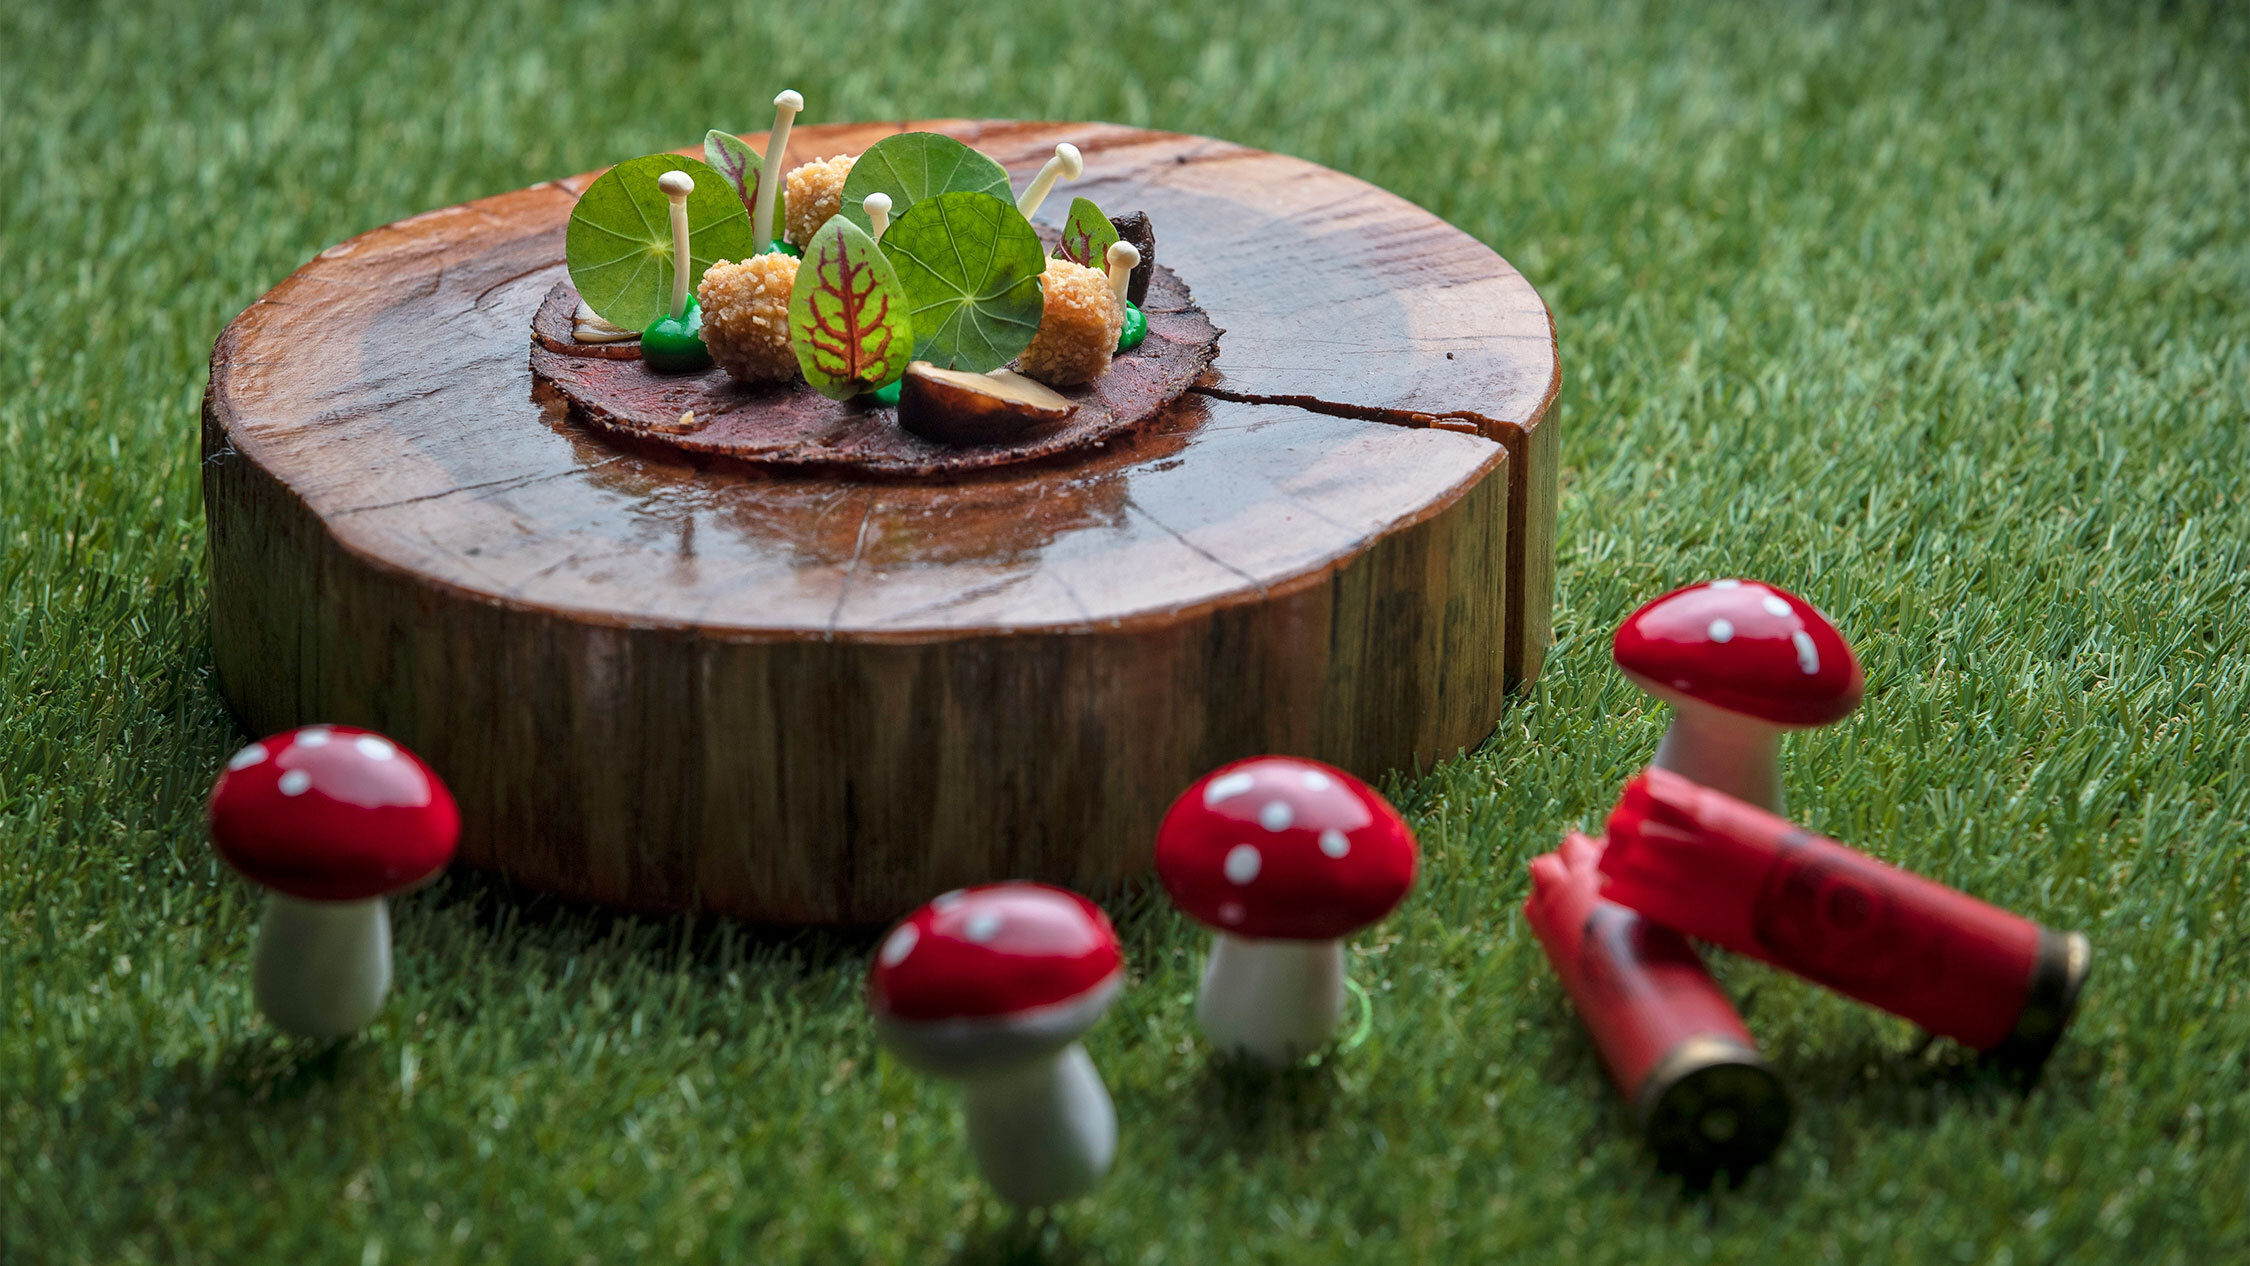 dish featuring red toadstools